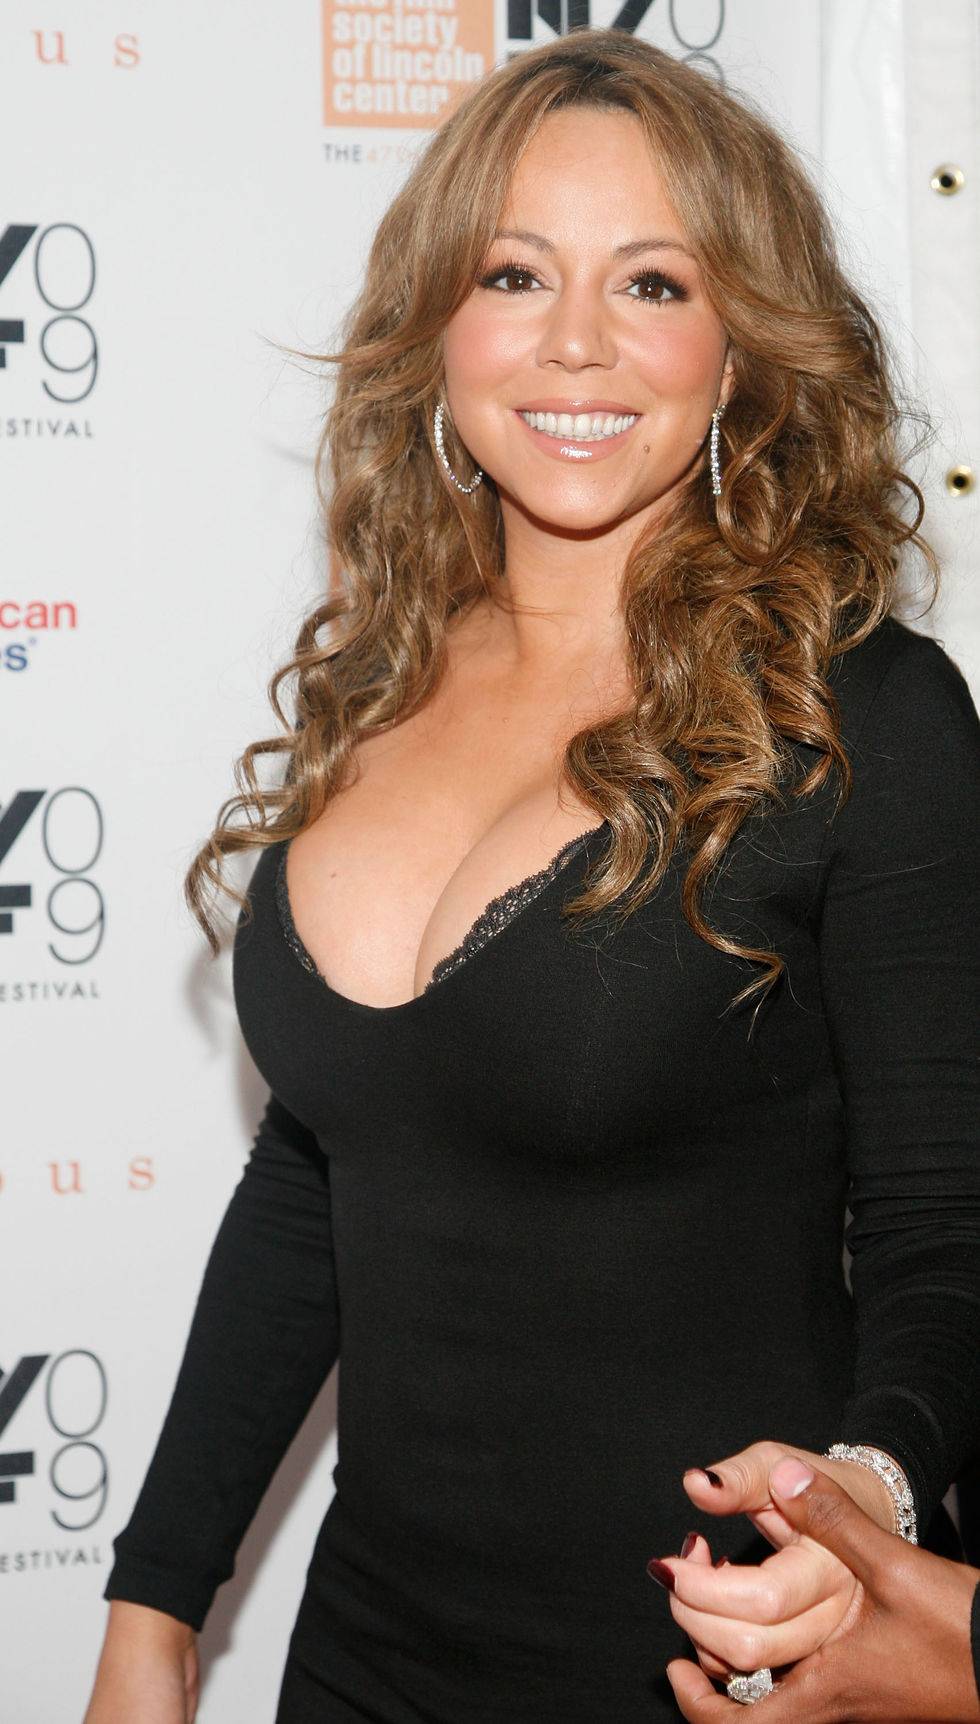 mariah-carey-and-her-cleavage-at-precious-screening-15